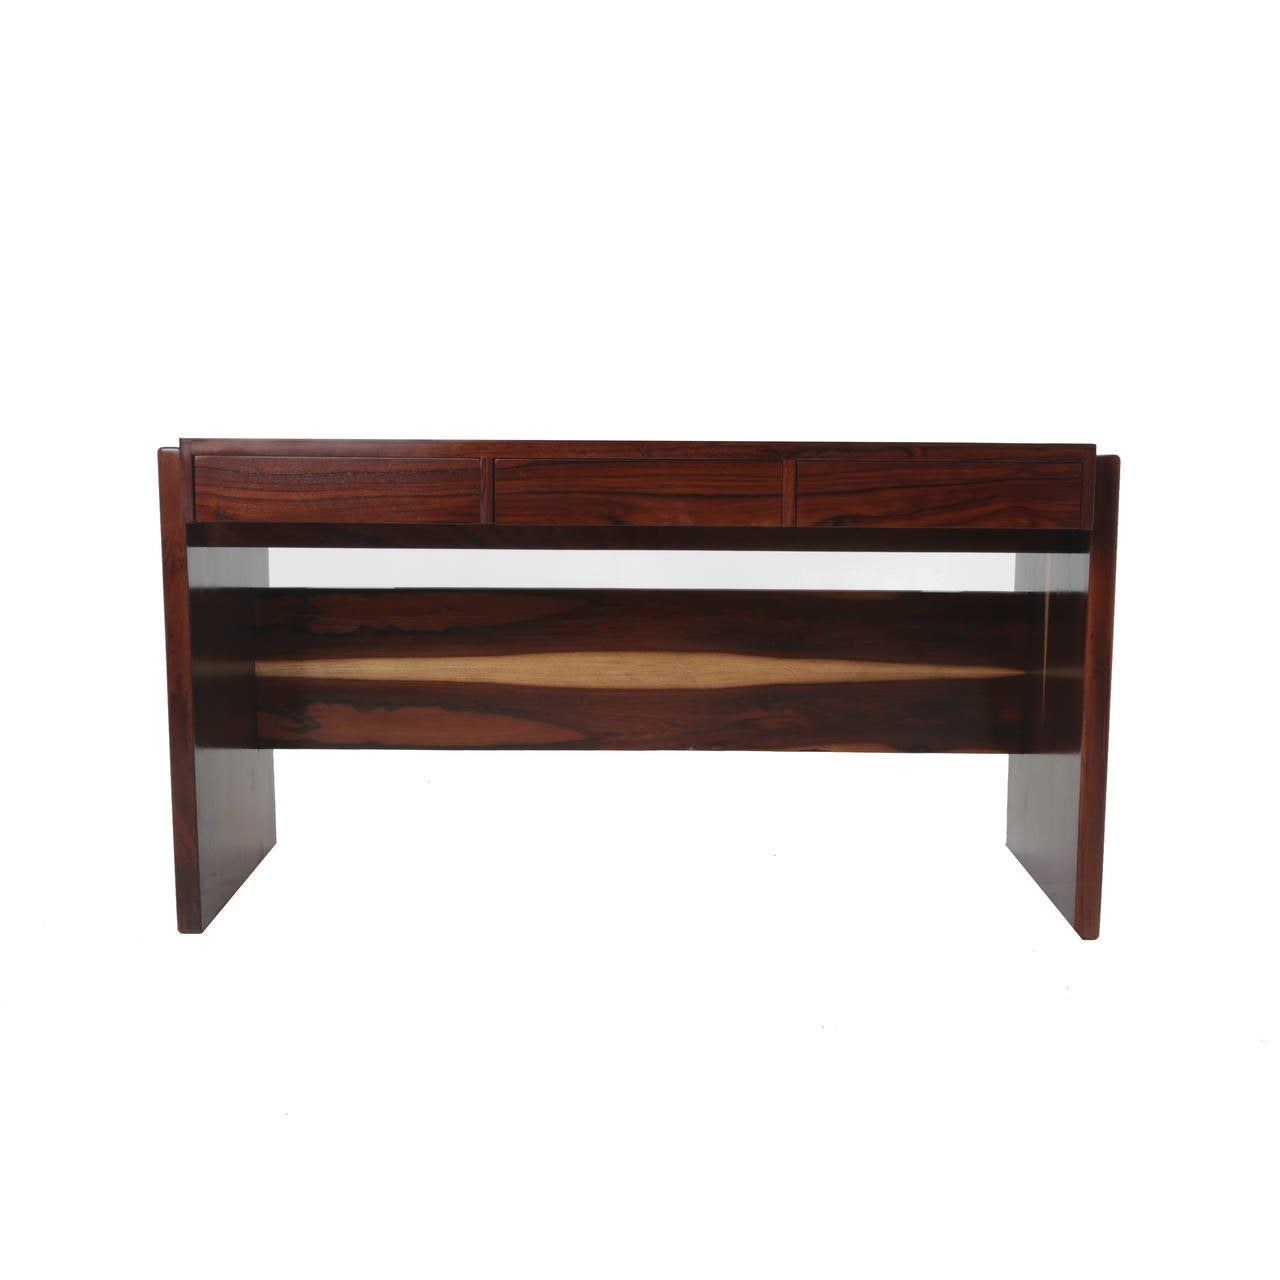 Brazilian Rosewood and Glass Desk by Joaquim Tenreiro For Sale